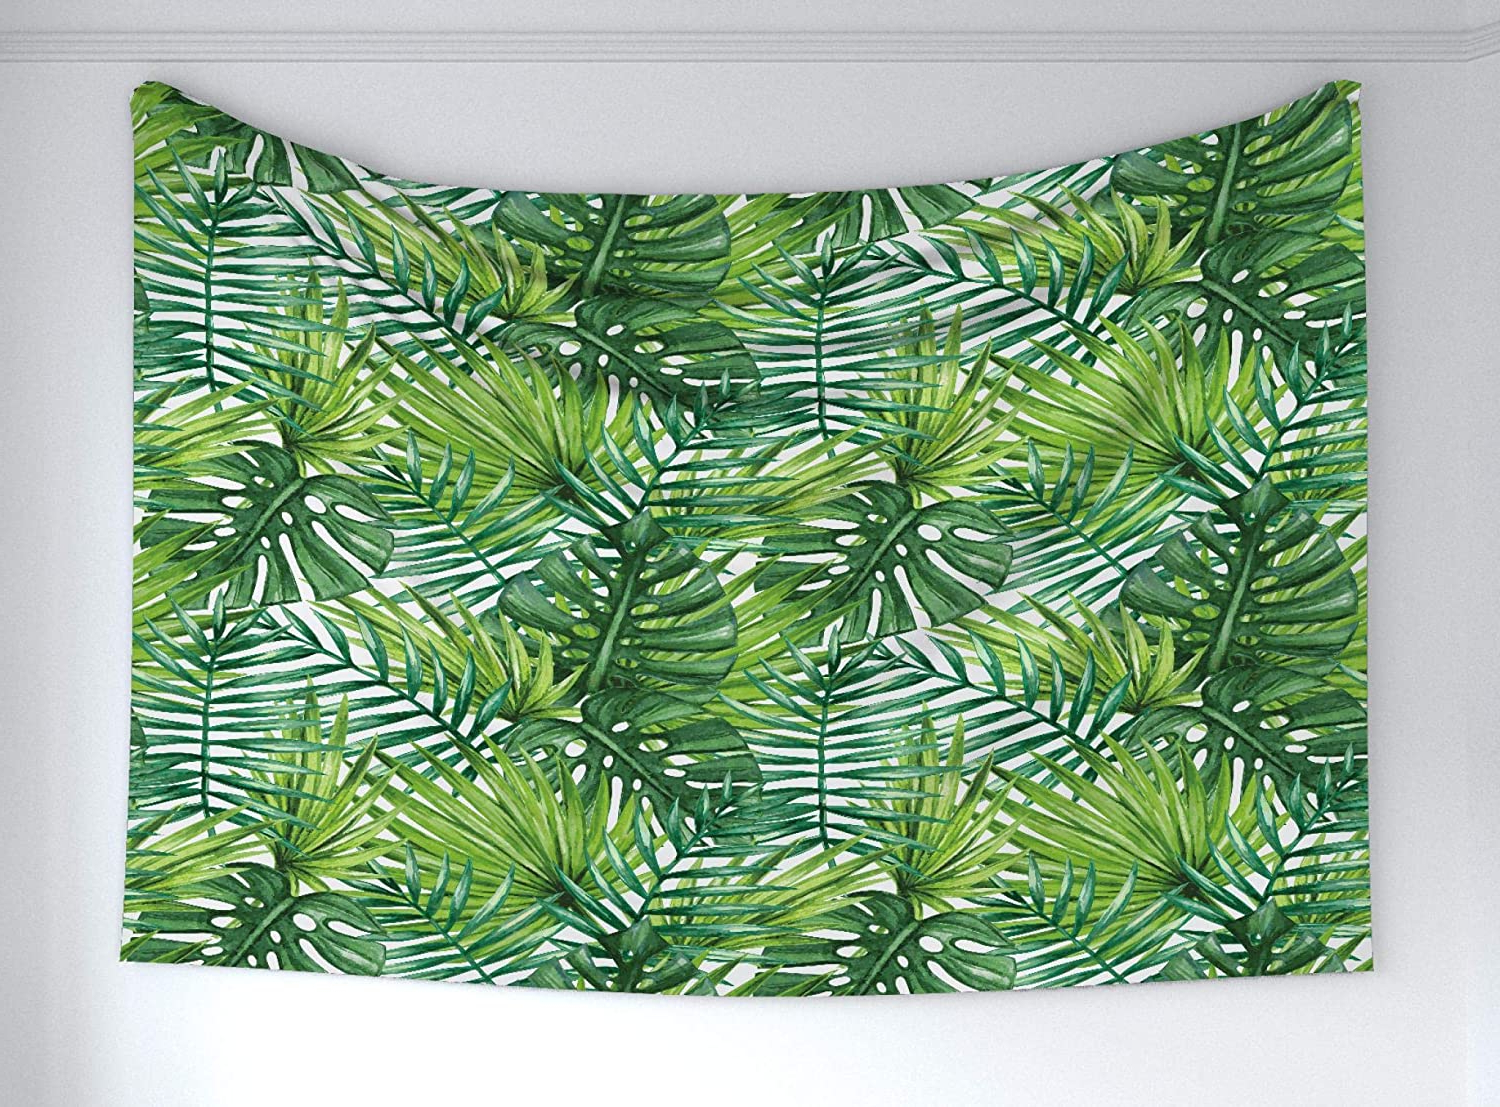 Current Blended Fabric Leaves Wall Hangings Within Ambesonne Leaf Tapestry, Tropical Exotic Banana Forest Palm Tree Leaves Watercolor Design Image, Fabric Wall Hanging Decor For Bedroom Living Room (View 18 of 20)